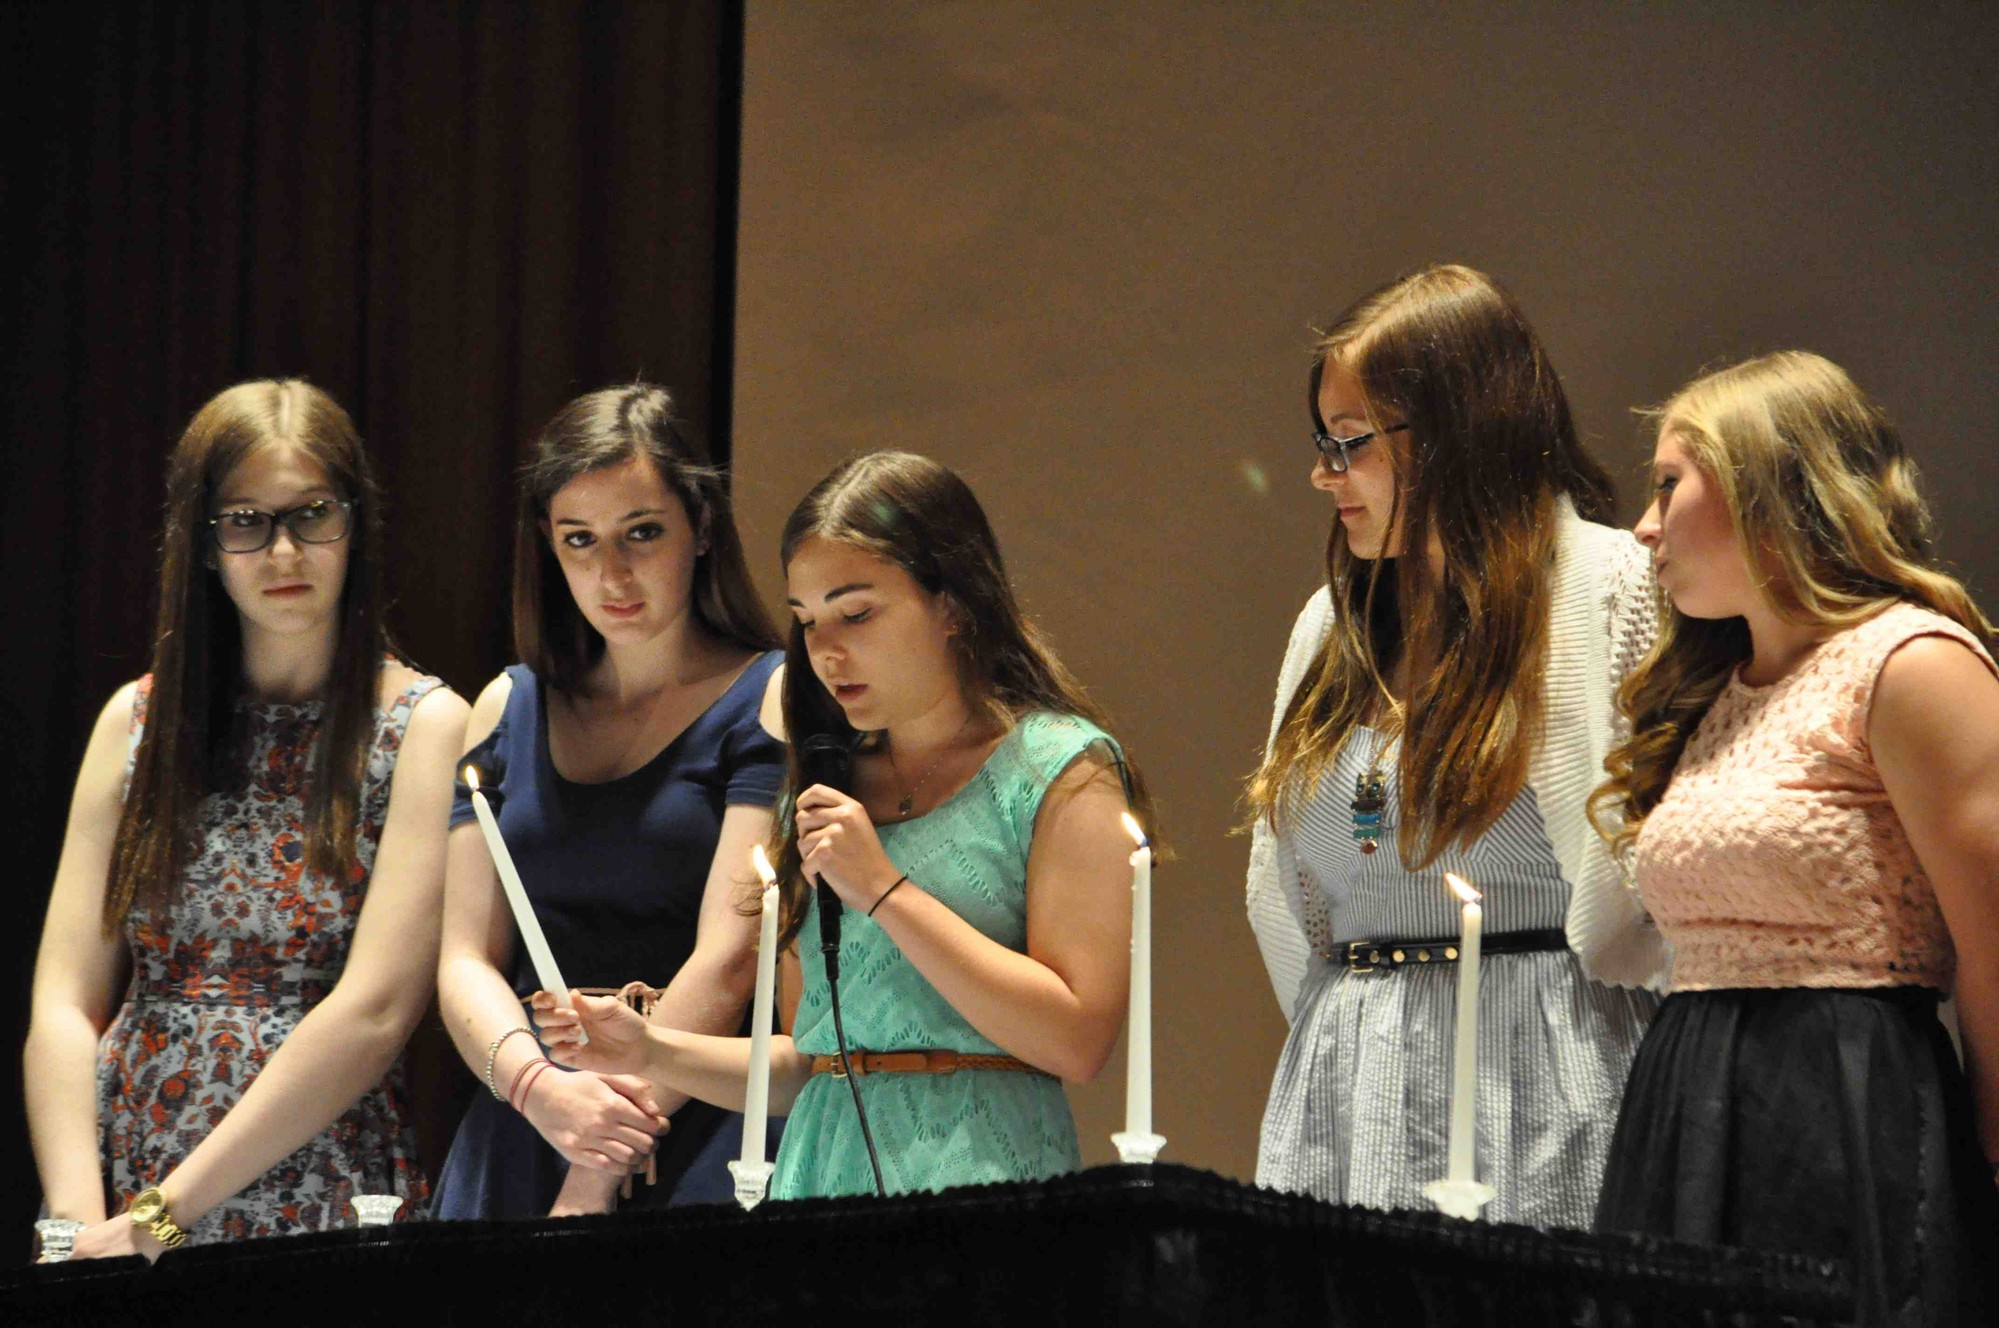 Beatrice Brown (Kennedy), Alix Kozin (Calhoun), Rachel Ross (Calhoun), Erica Miller (Mepham) and Kiara Kaylor (Mepham) lit candles symbolizing the four pillars of the New York State Science Honor Society during an induction ceremony on May 19.